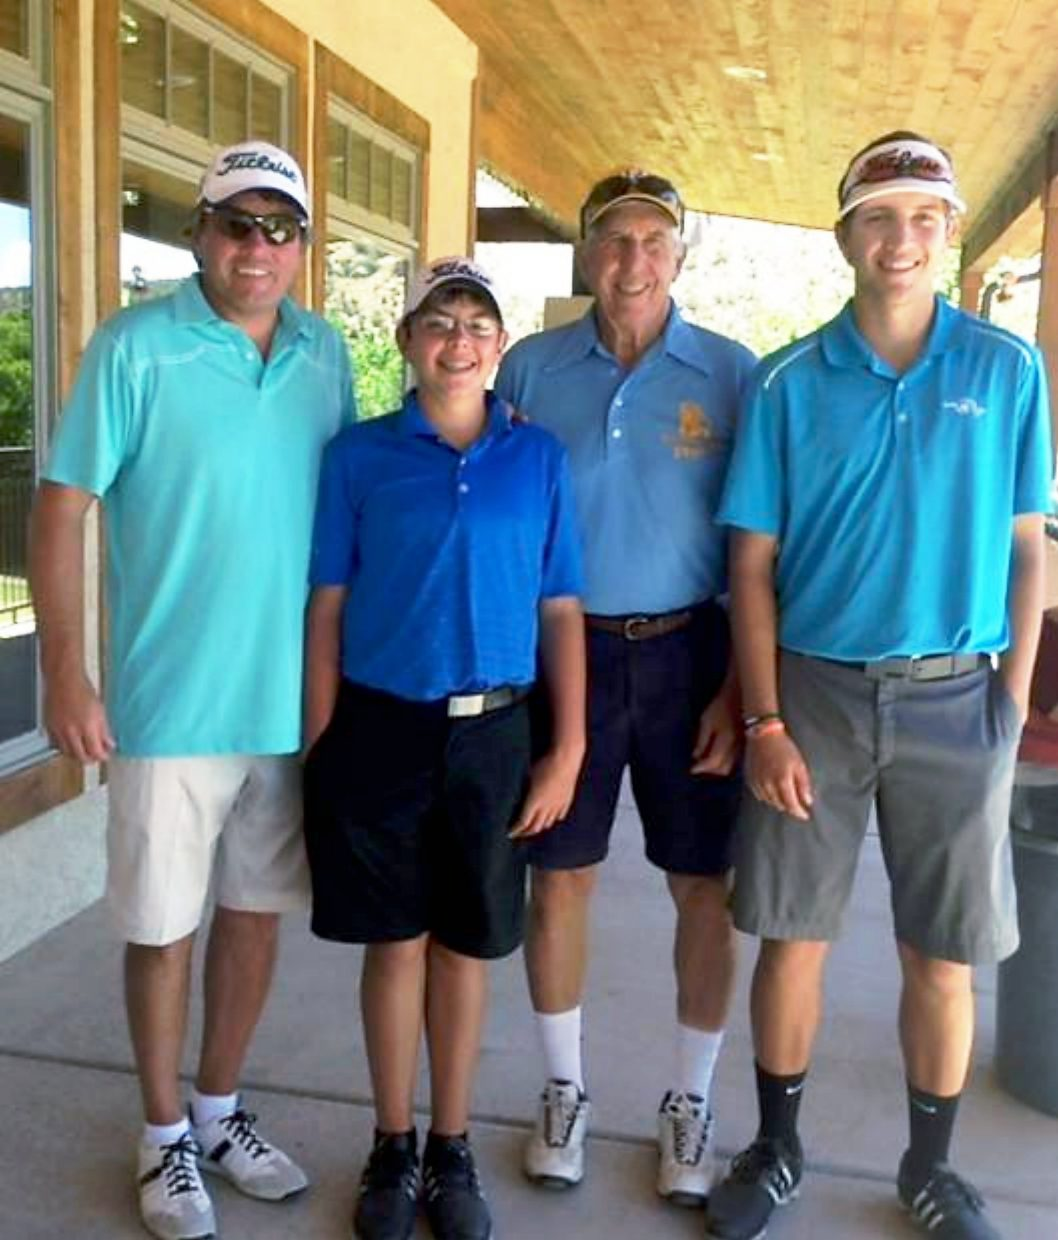 Participating in the Jack Smith scholarship tournament at Rifle Creek Golf Course on Aug. 2 were Jack Smith, back, and from left, his son, Tod Smith, and grandsons, Jacob and Kyler Smith.